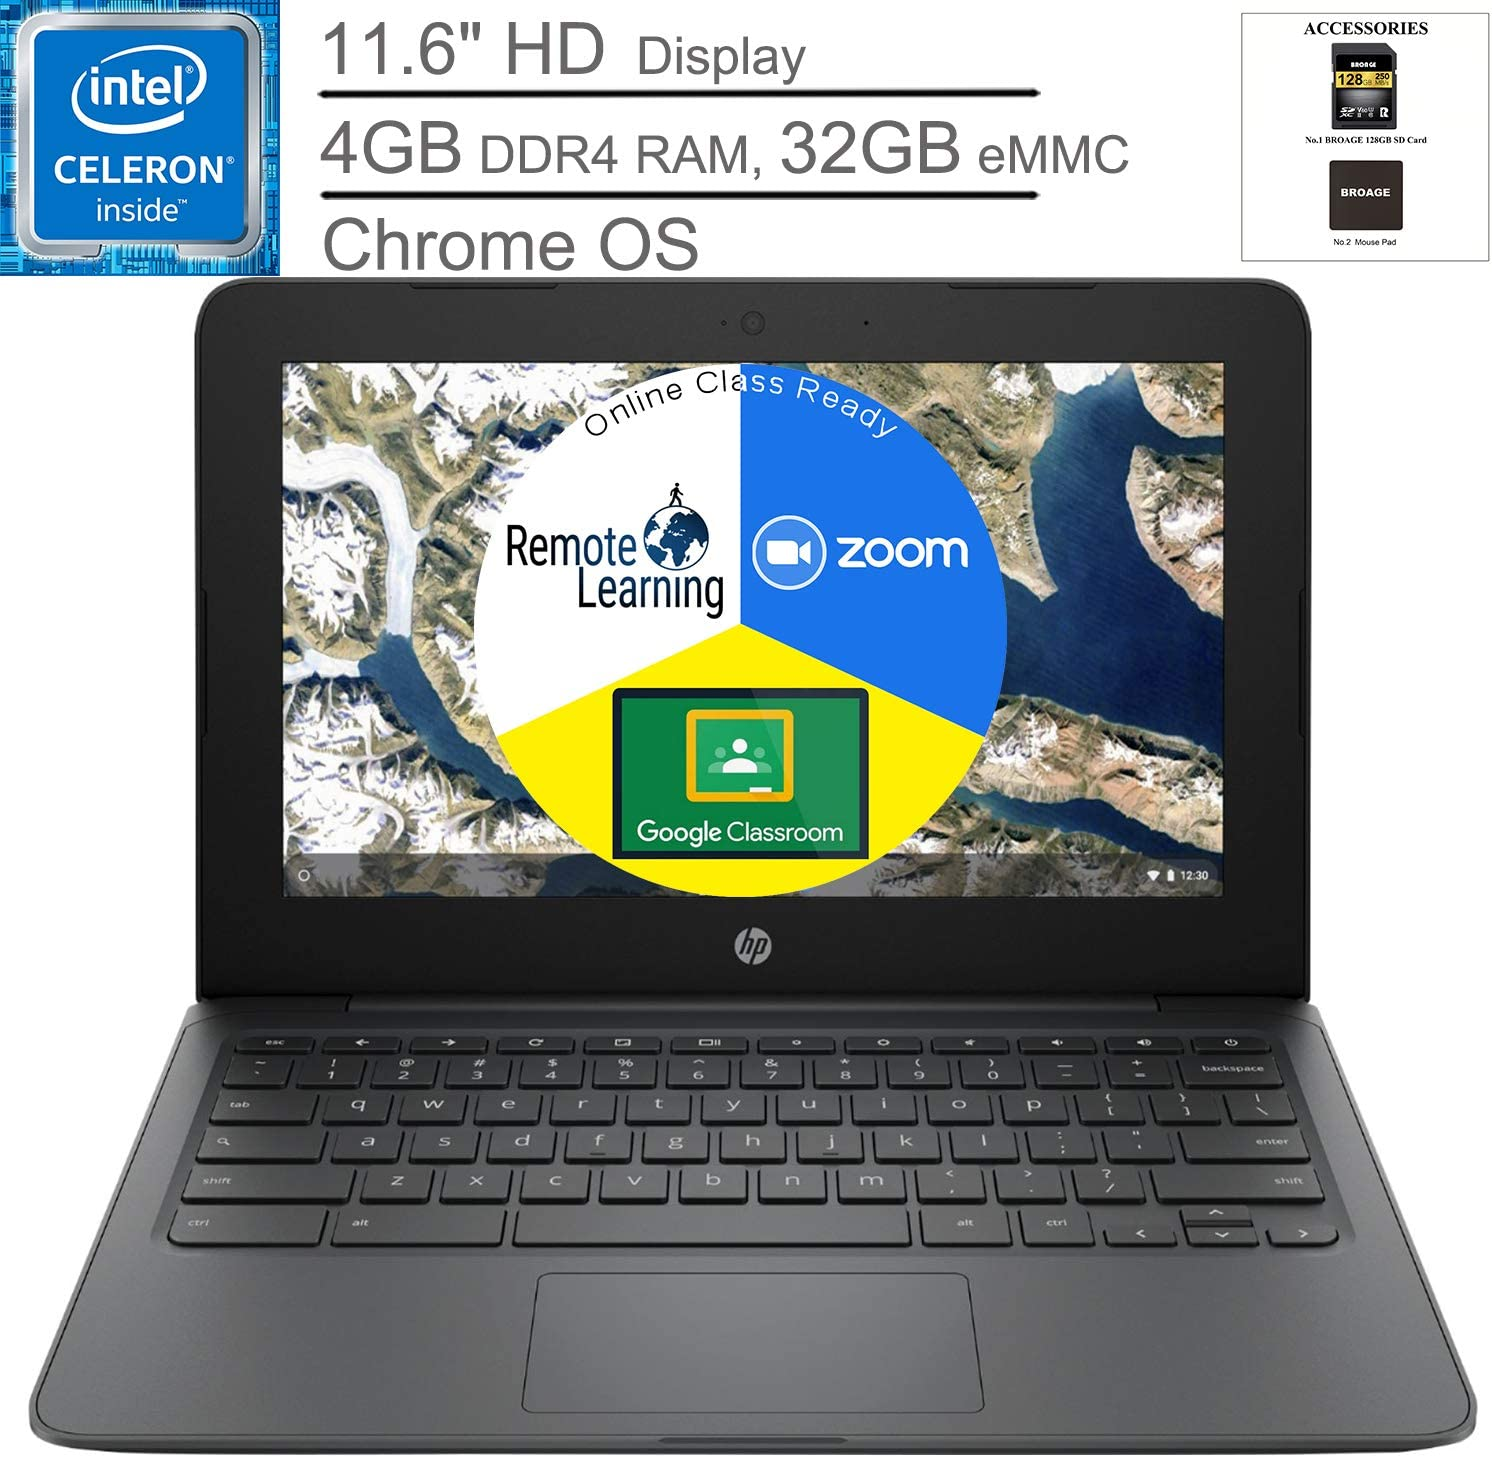 """HP Chromebook 11.6"""" Laptop Computer for Student, Intel Celeron N3350 up to 2.4GHz, 4GB DDR4 RAM, 32GB eMMC, Microphone, Webcam, Type-C, Chrome OS, BROAGE Mouse Pad + 128GB SD Card, Online Class Ready"""